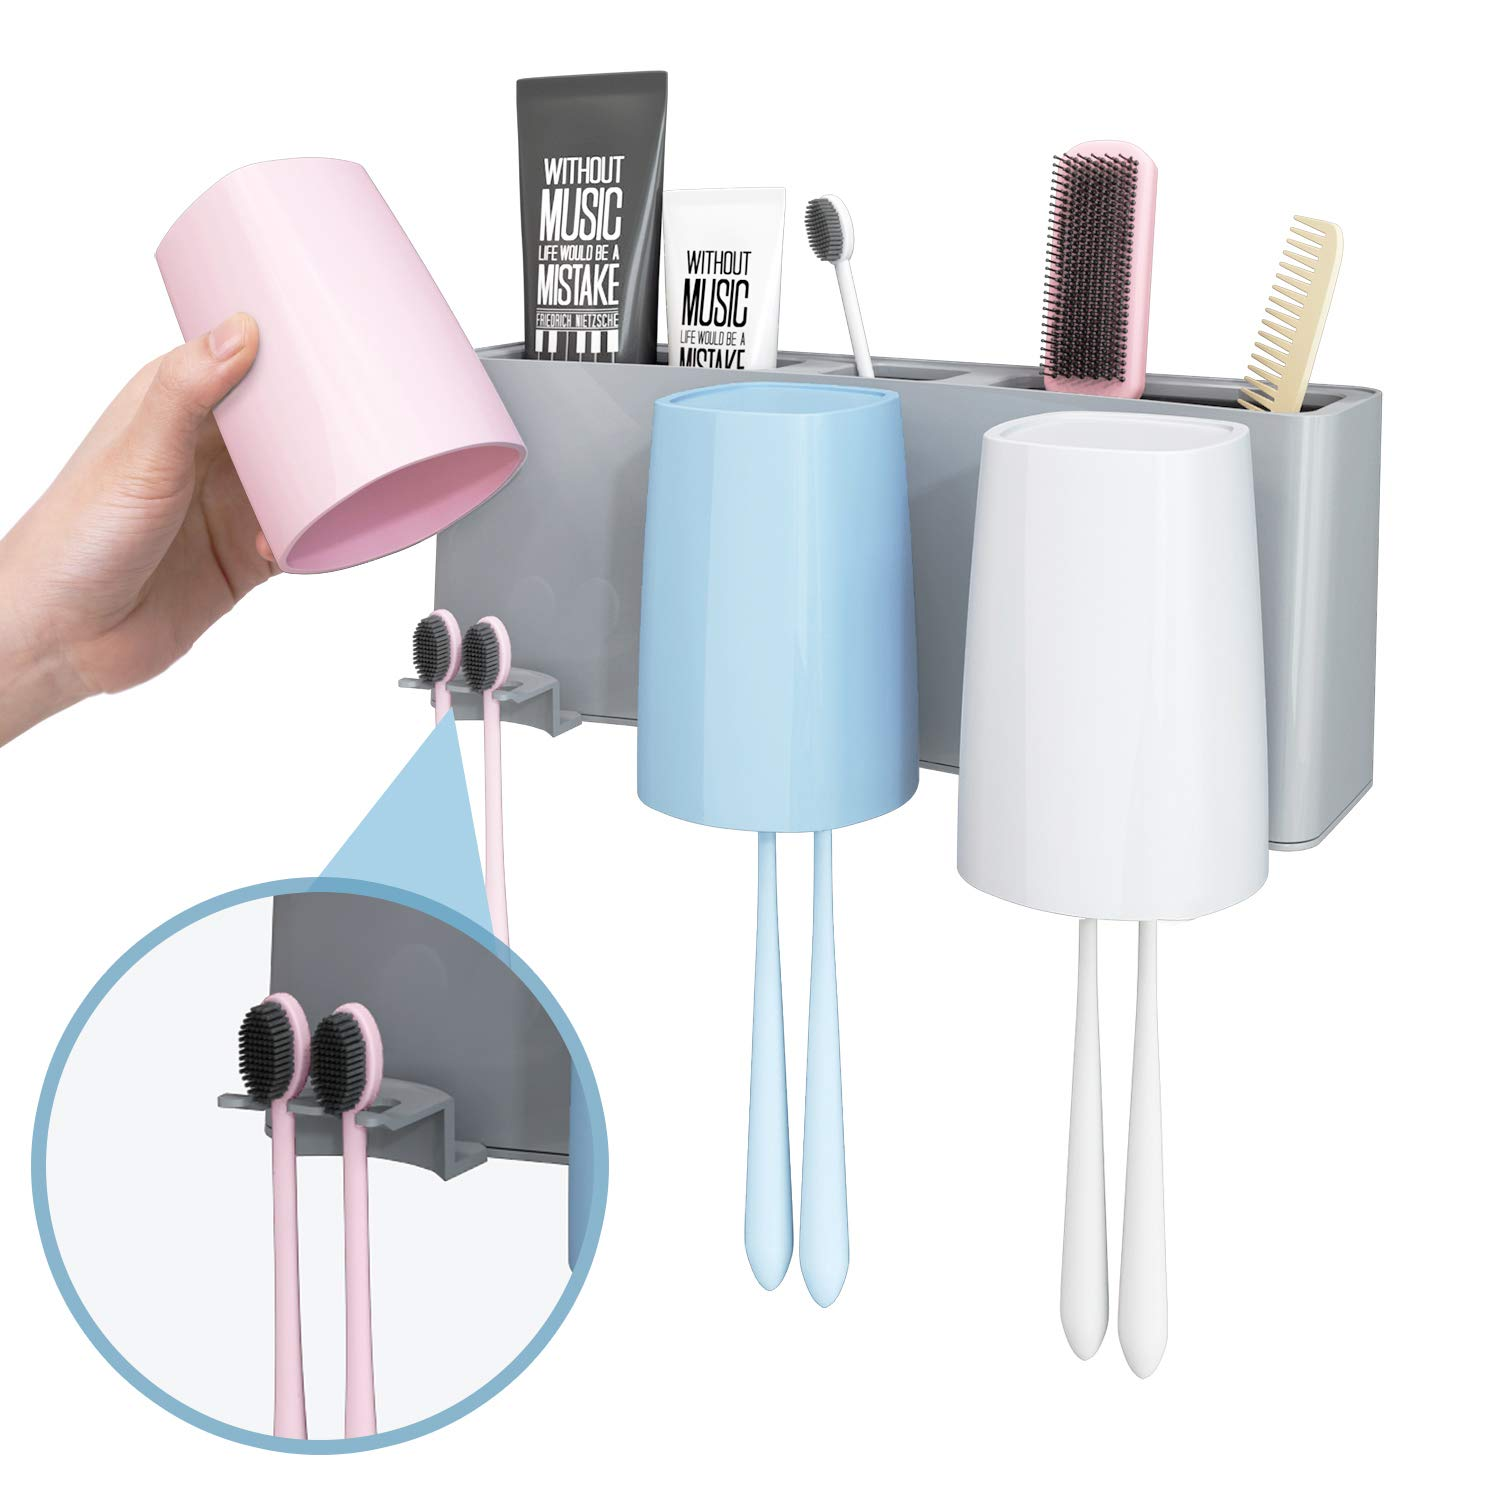 6 Toothbrush Slots Convallaria Toothbrush Holder Multifunctional Wall Mounted Bathroom Storage Organizer Anti-dust with 3M Self-Adhesive Easily Mounted Organizer 3 Color 3 Slots and 3 Rinse Cups